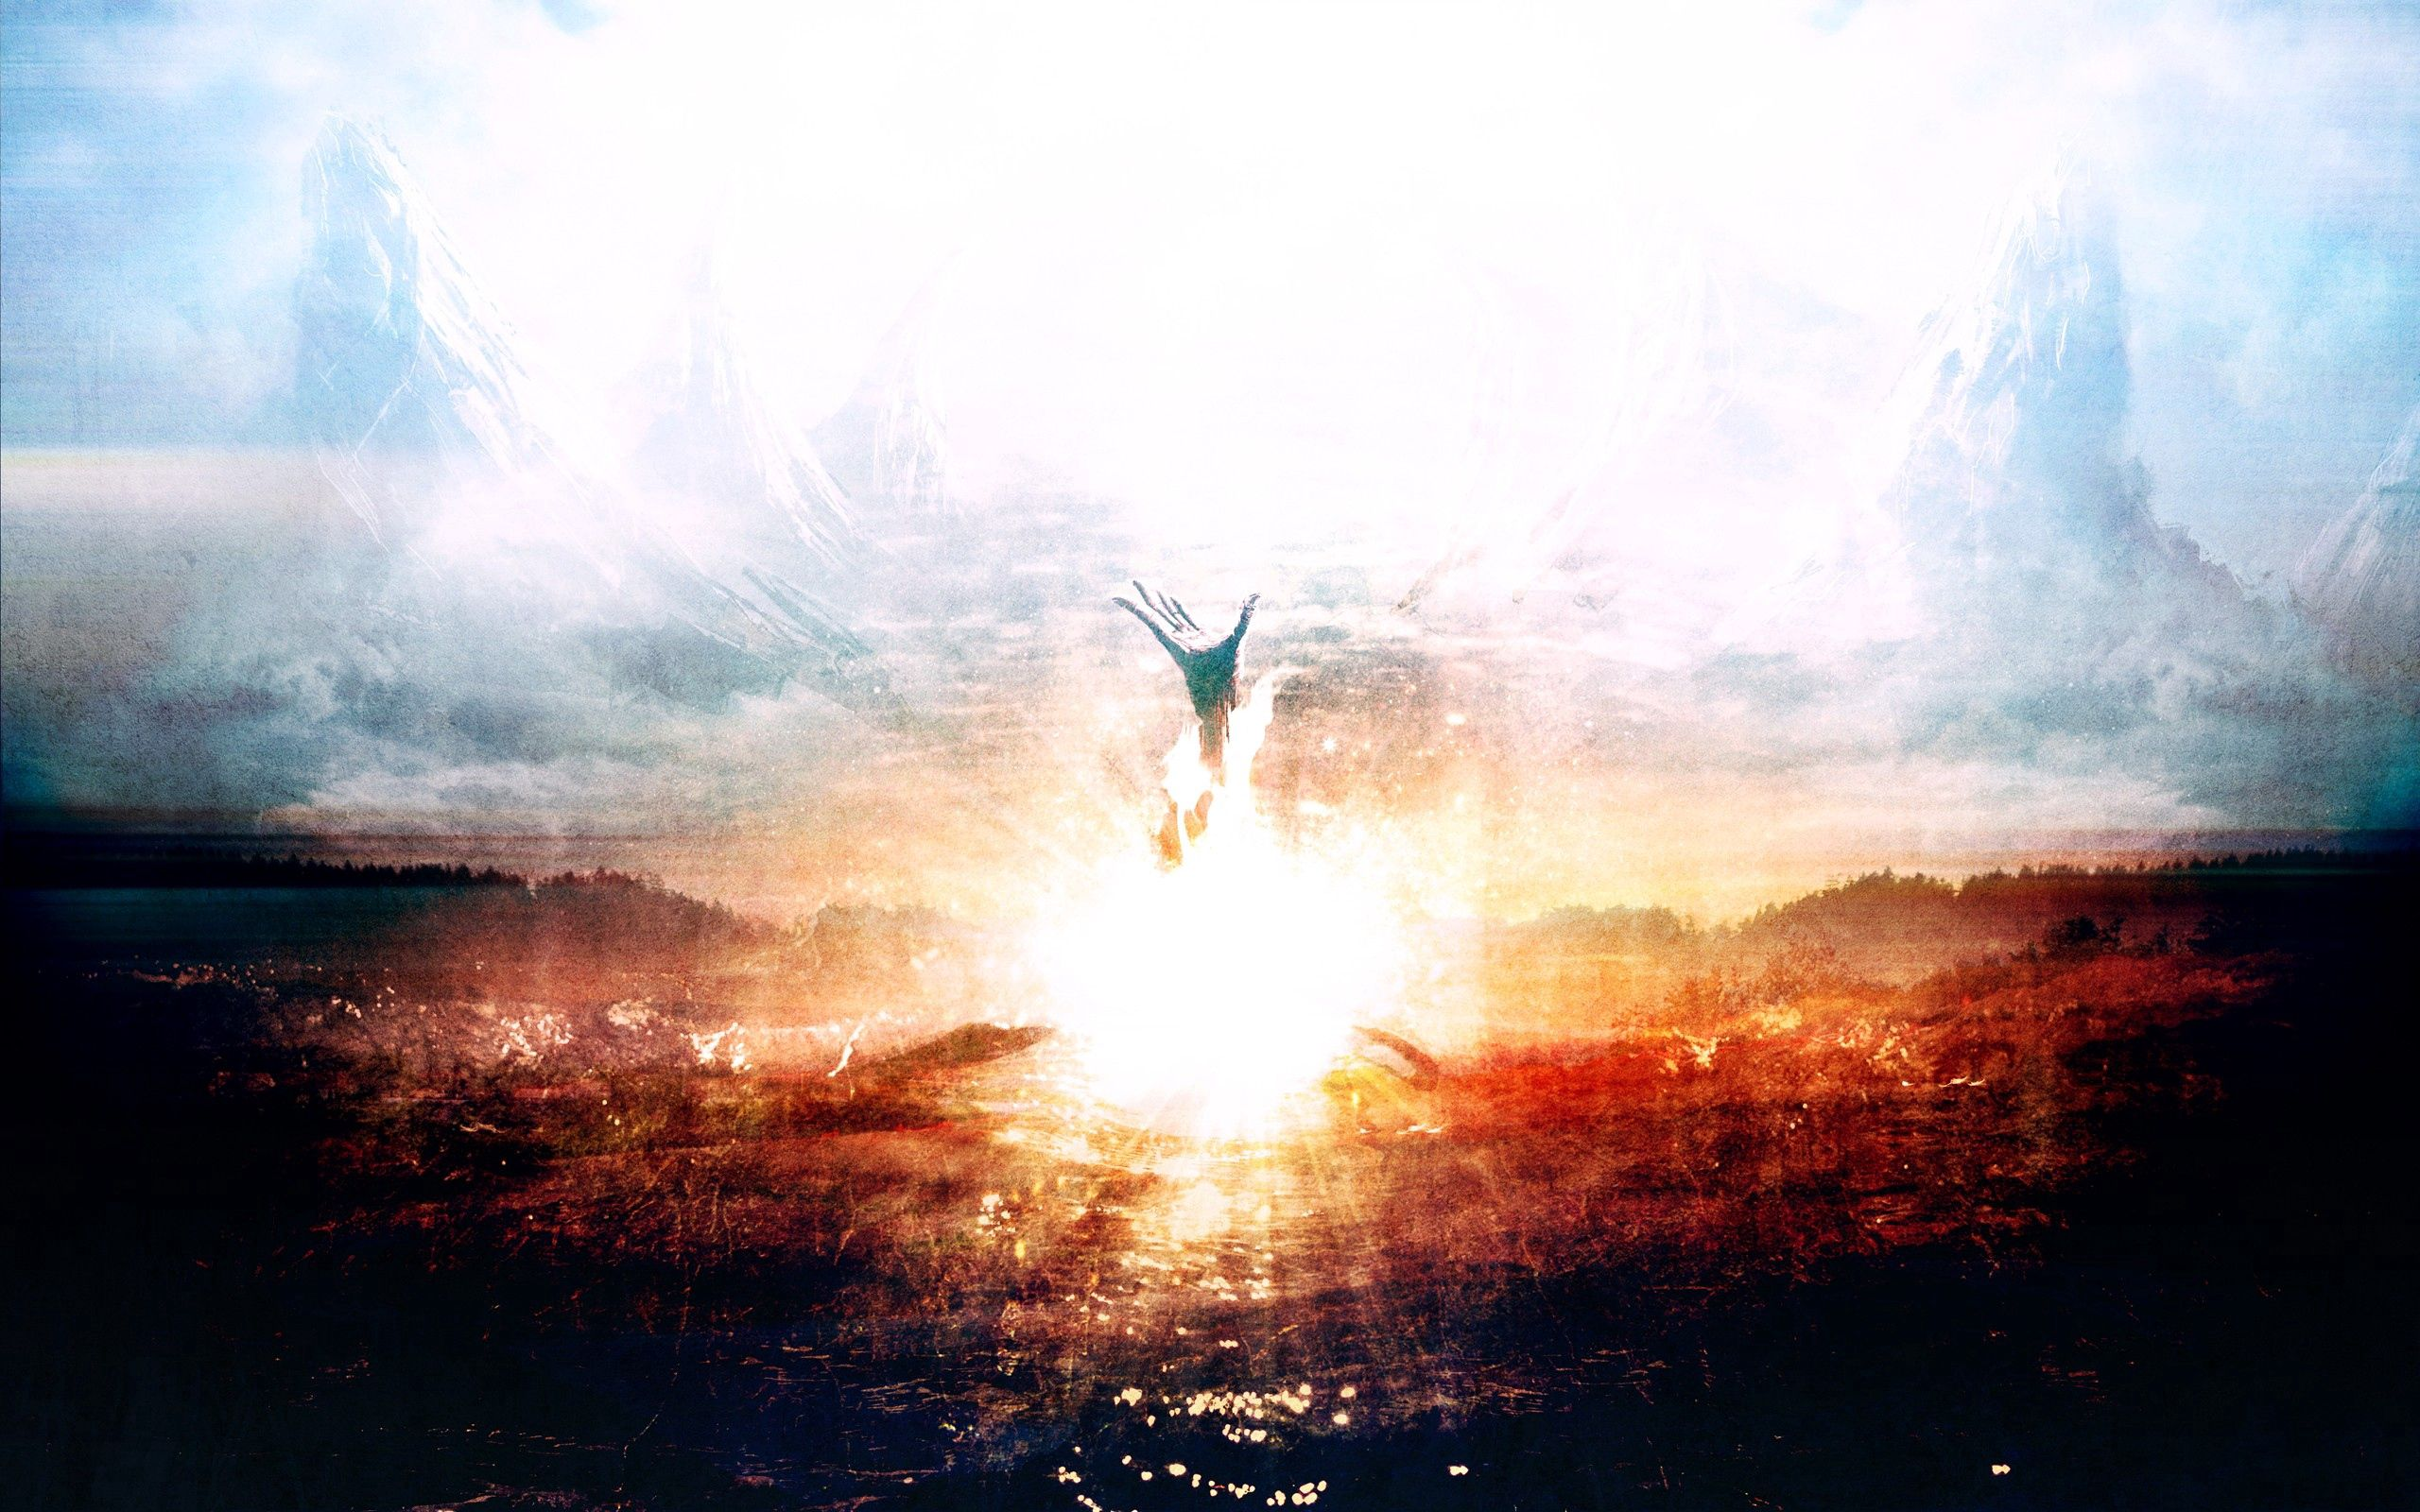 134628 download wallpaper Abstract, Explosion, Hand, Doom, Death, Heaven, Paints screensavers and pictures for free